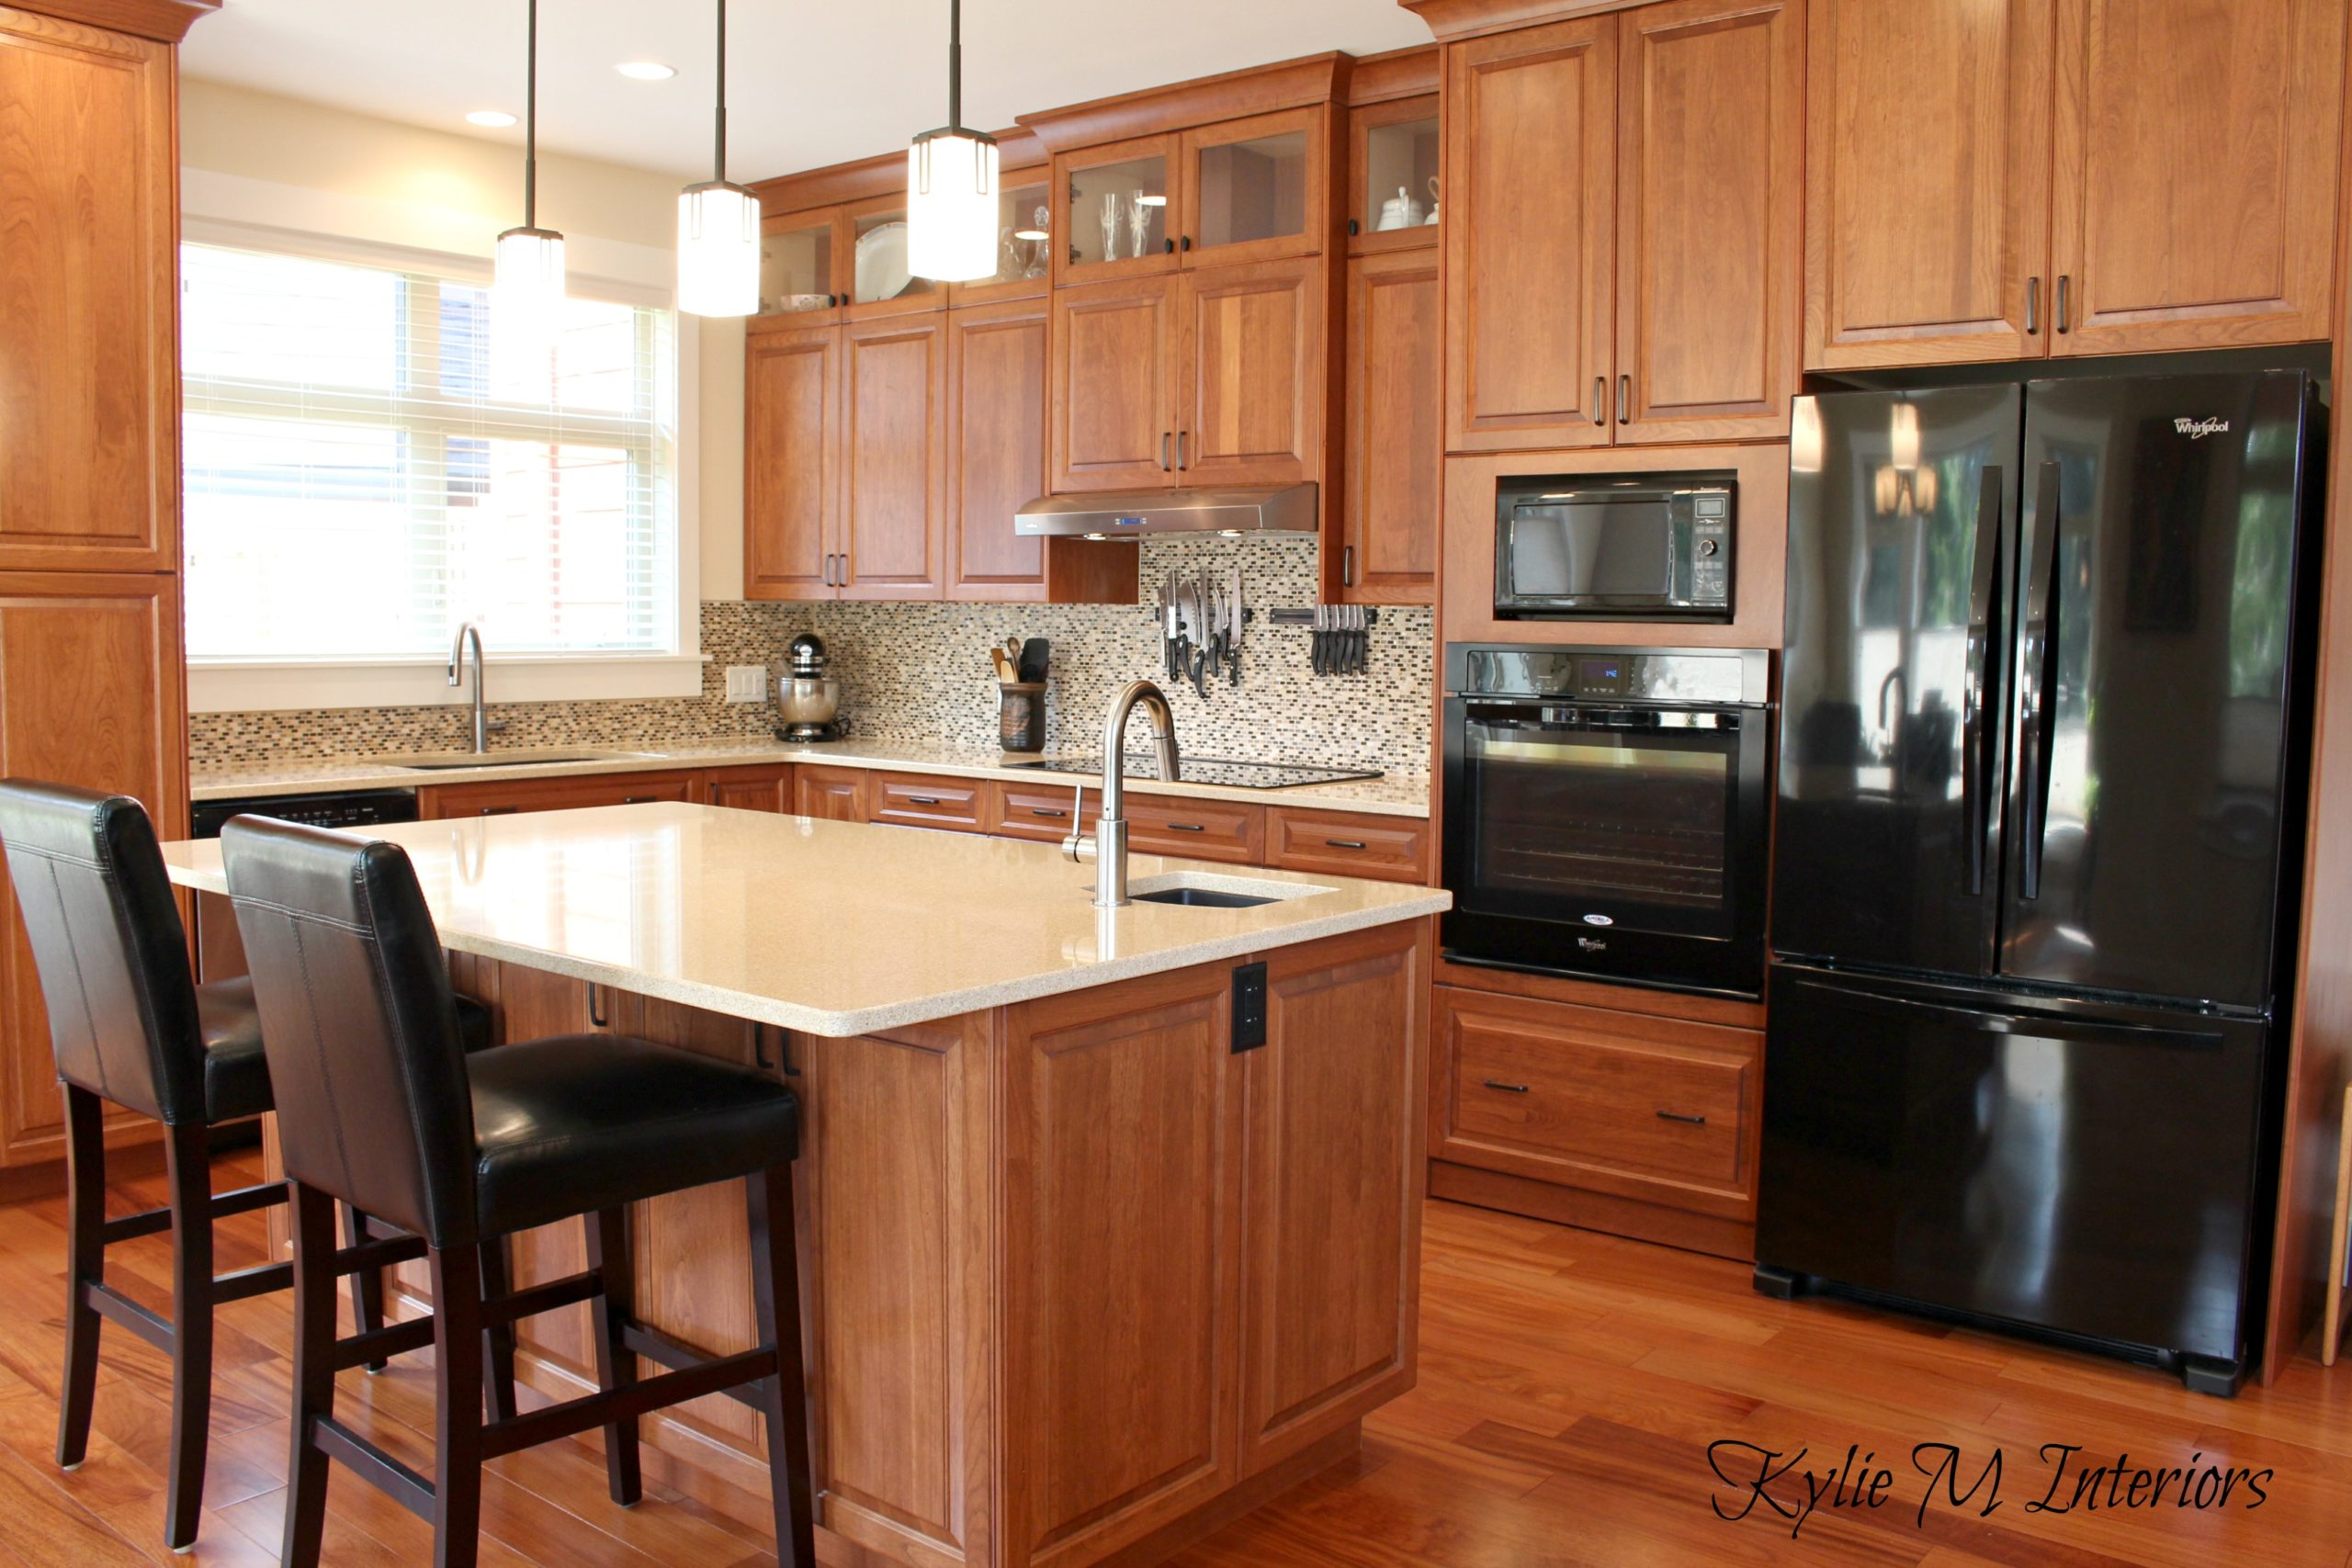 Cherry kitchen cabinets in modern transitional kitchen for Cherry and white kitchen cabinets